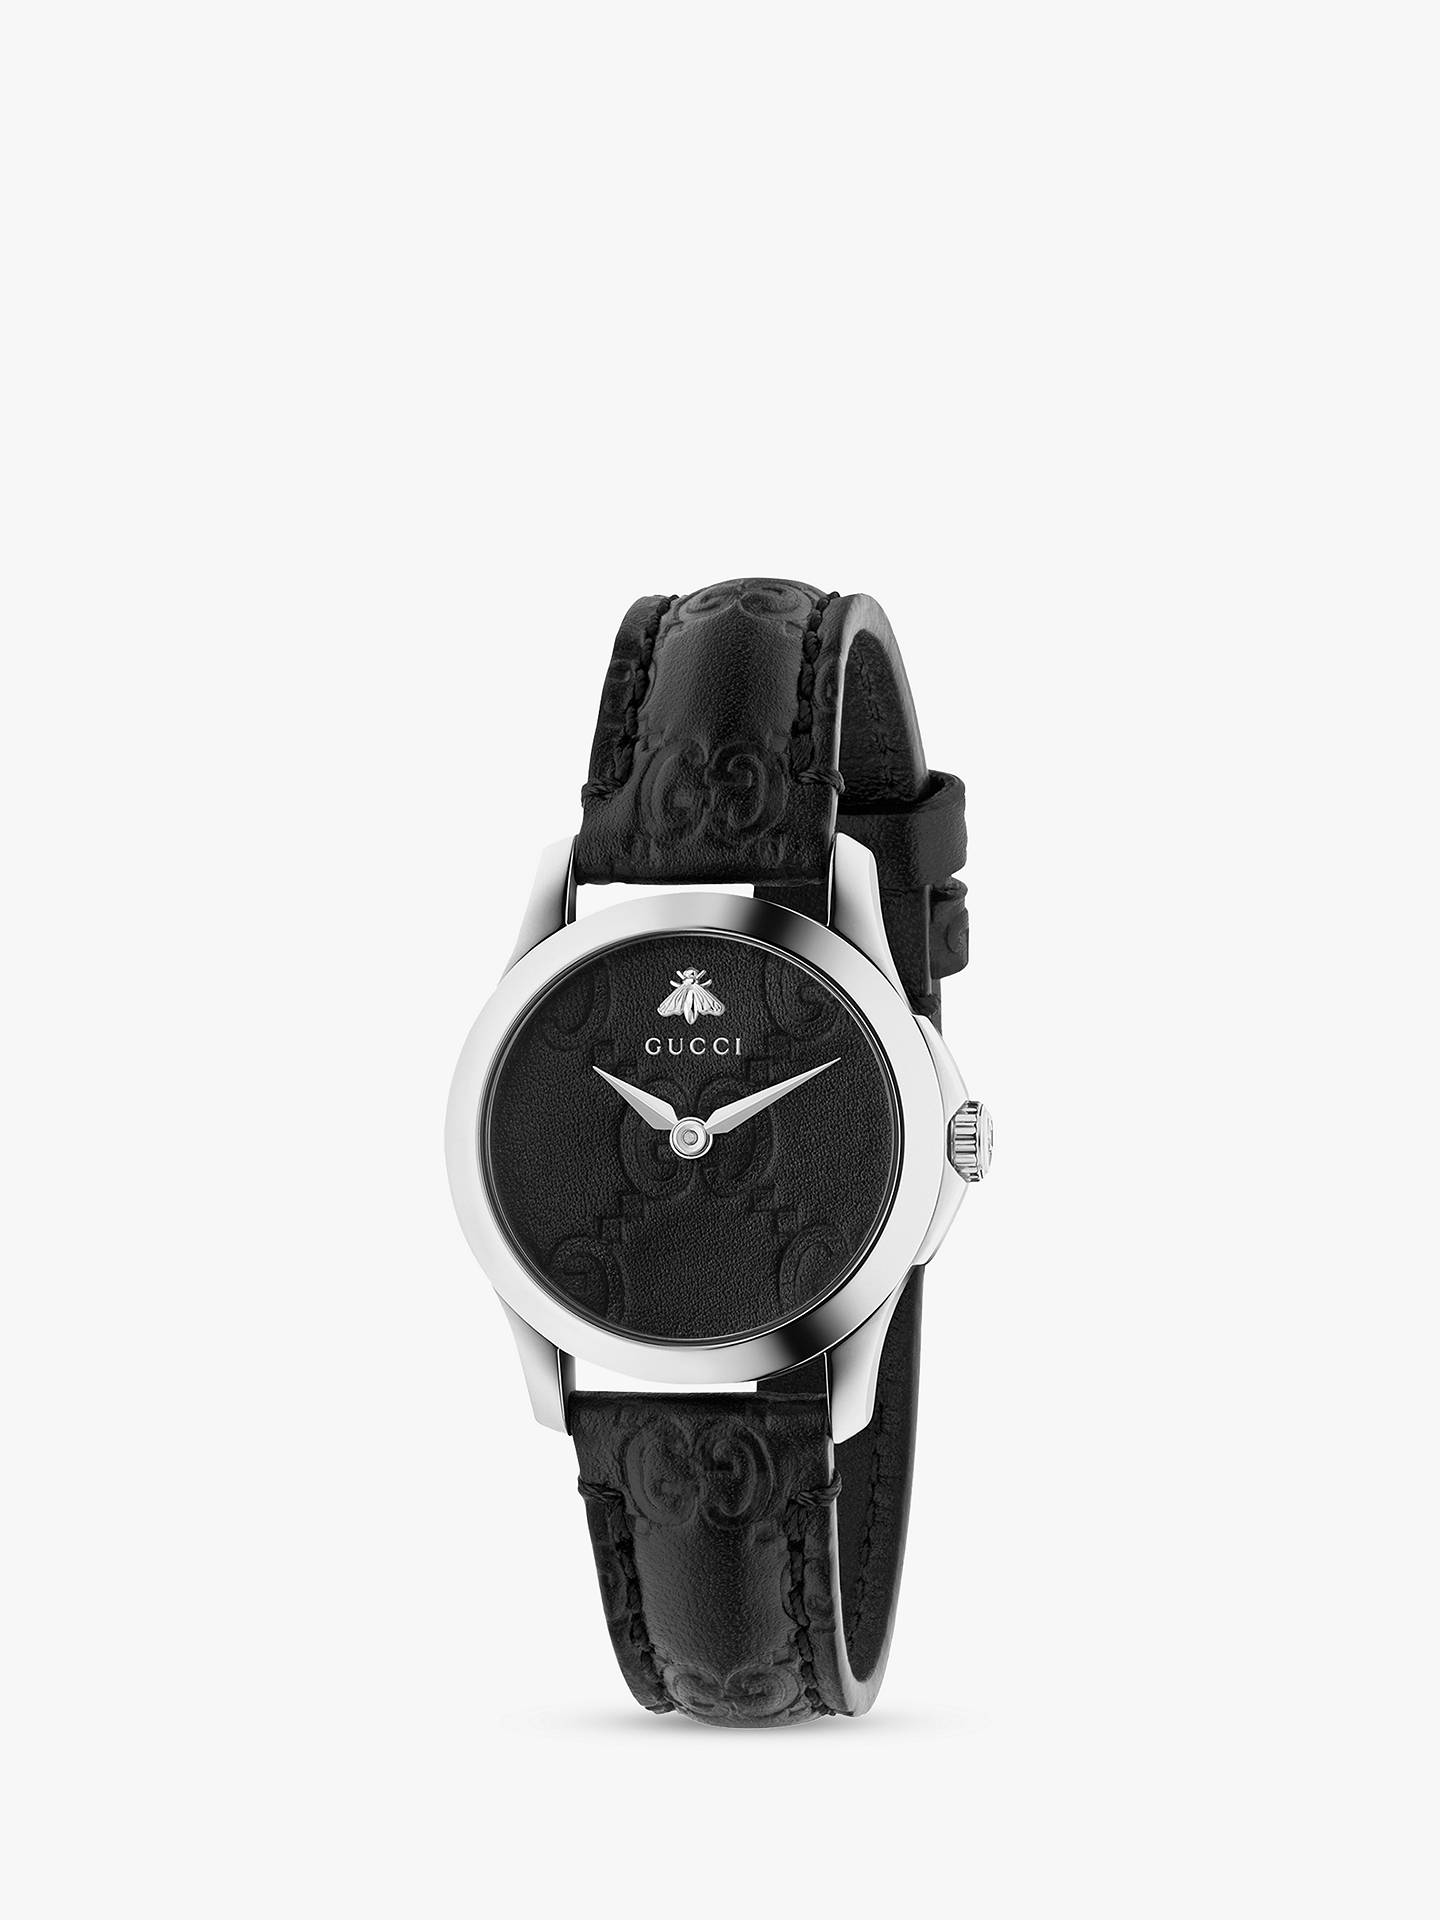 45685b48203 Gucci YA126579 Women s G-Timeless Signature Leather Strap Watch ...